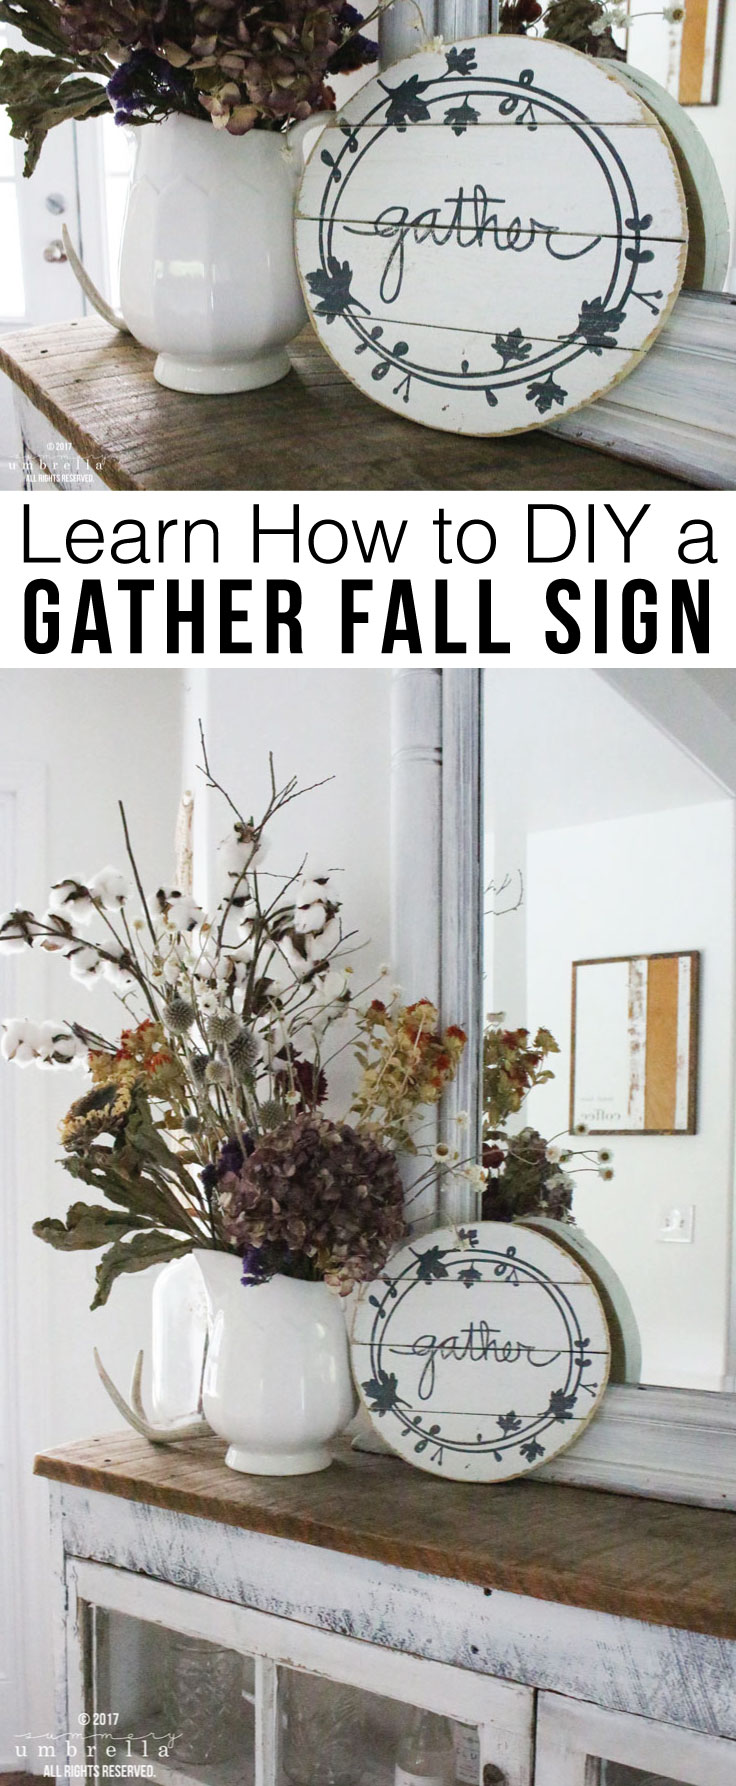 Learn how to create your very own DIY Gather Fall Sign. Not only is there a step-by-step tutorial, but a video too! MUST PIN!